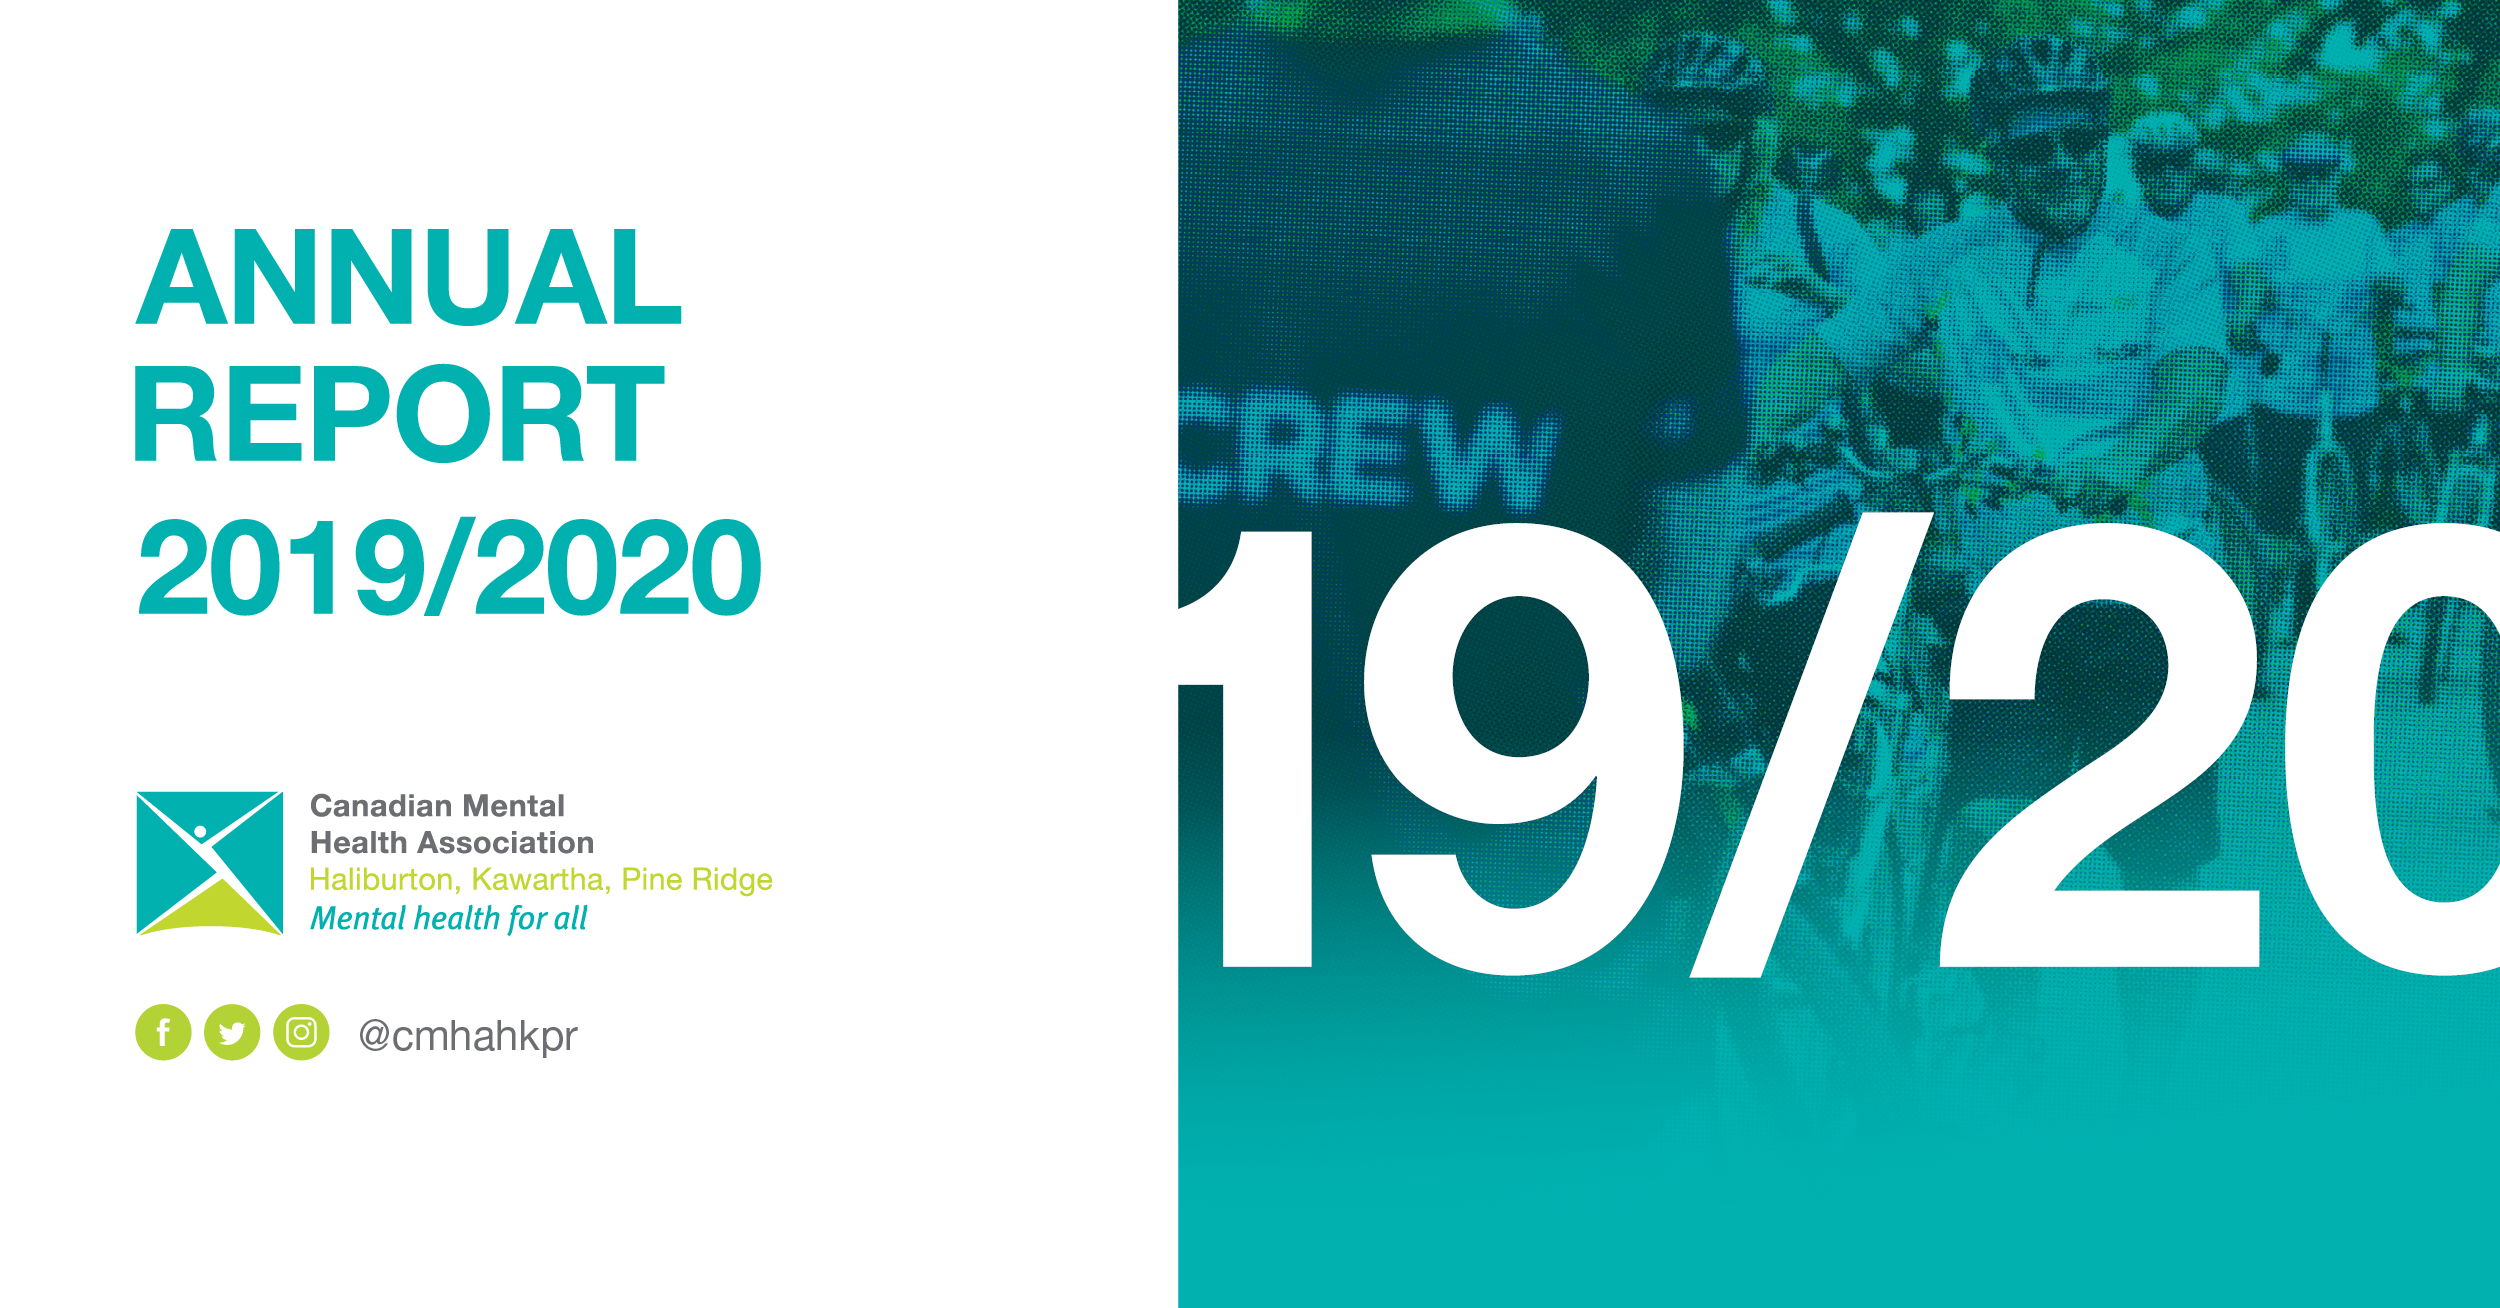 cover of 2019/2020 annual report